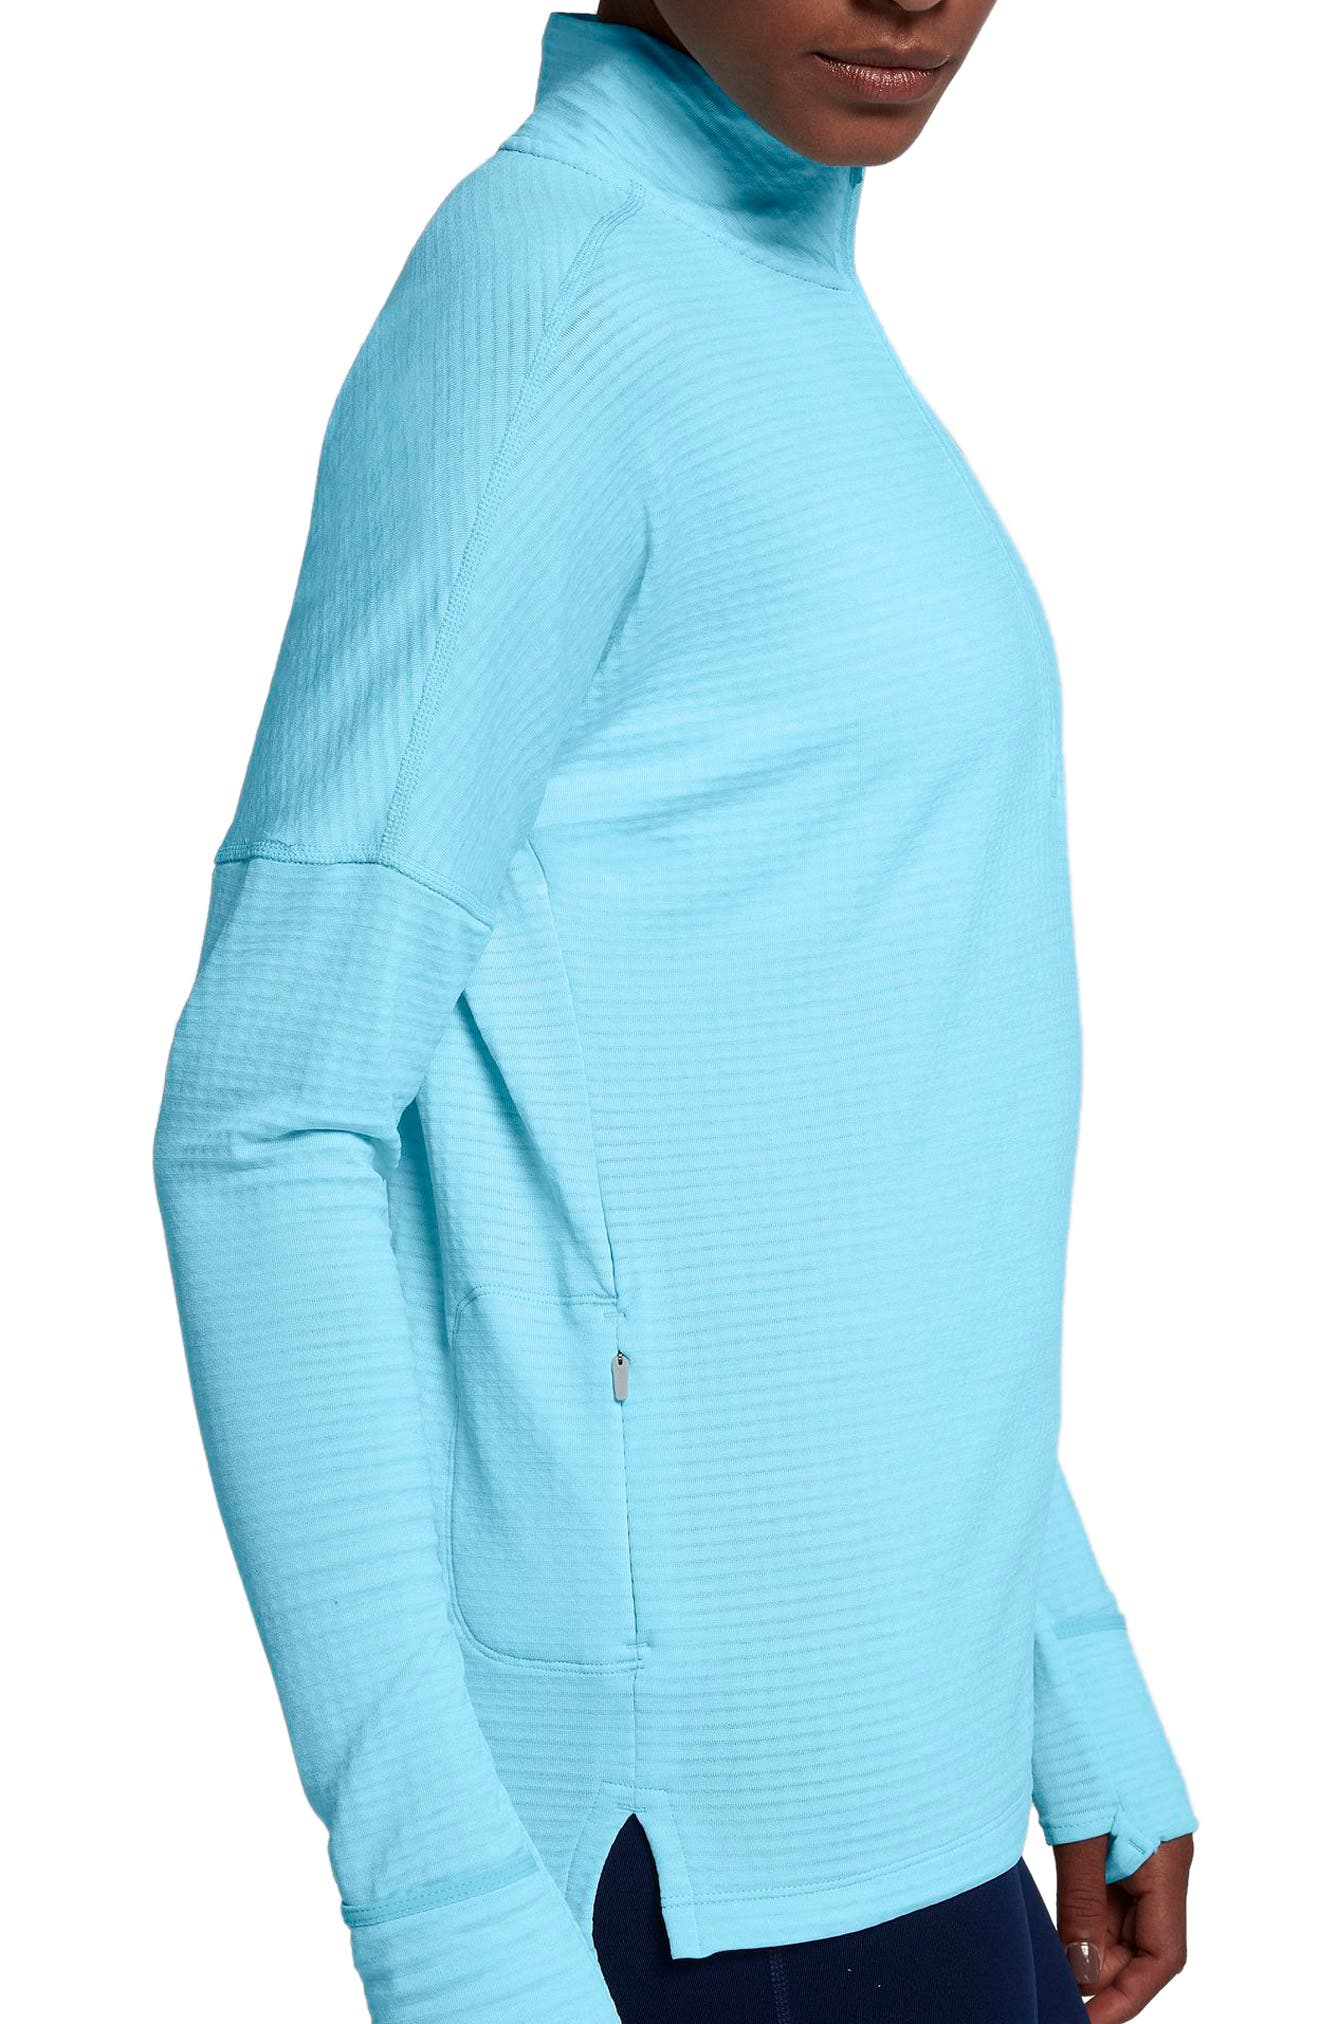 Therma Sphere Element Running Pullover Top,                             Alternate thumbnail 3, color,                             Polarized Blue/ Htr